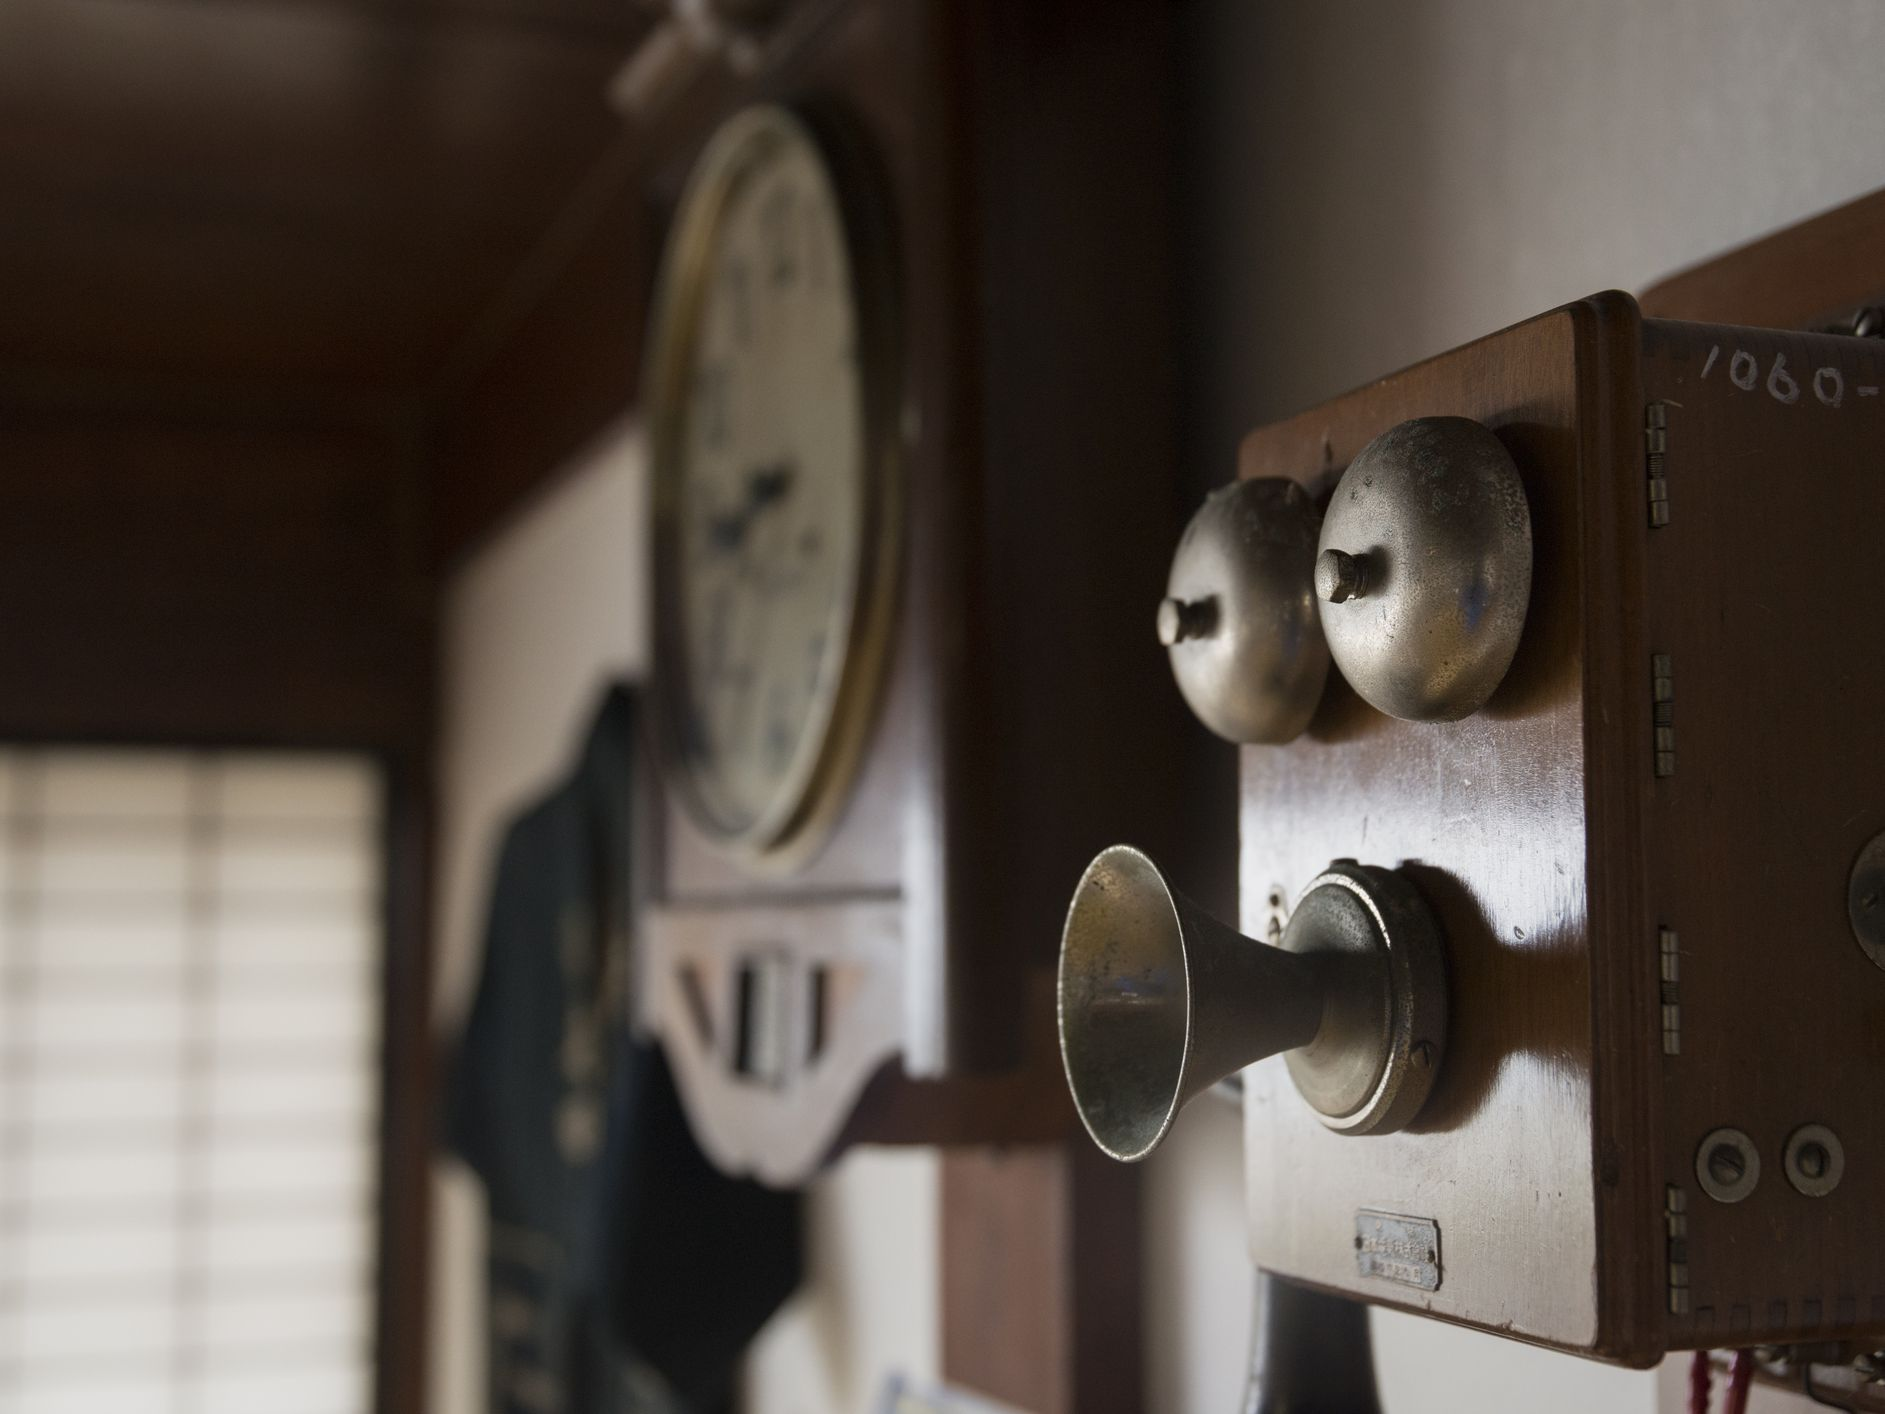 Identify Antique Wall Telephones on